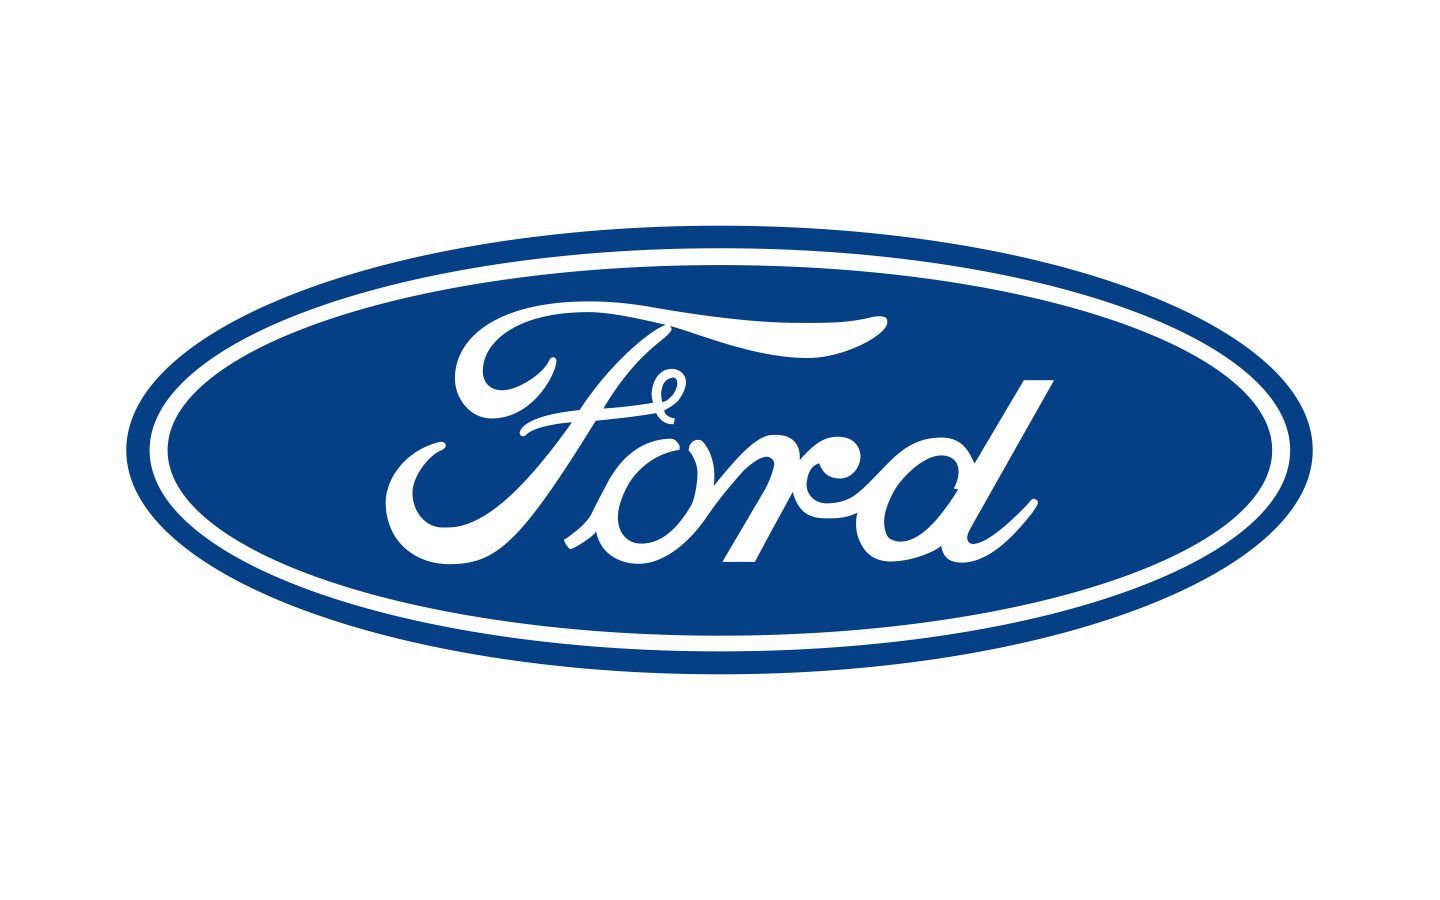 Ford-car-keys-dublin